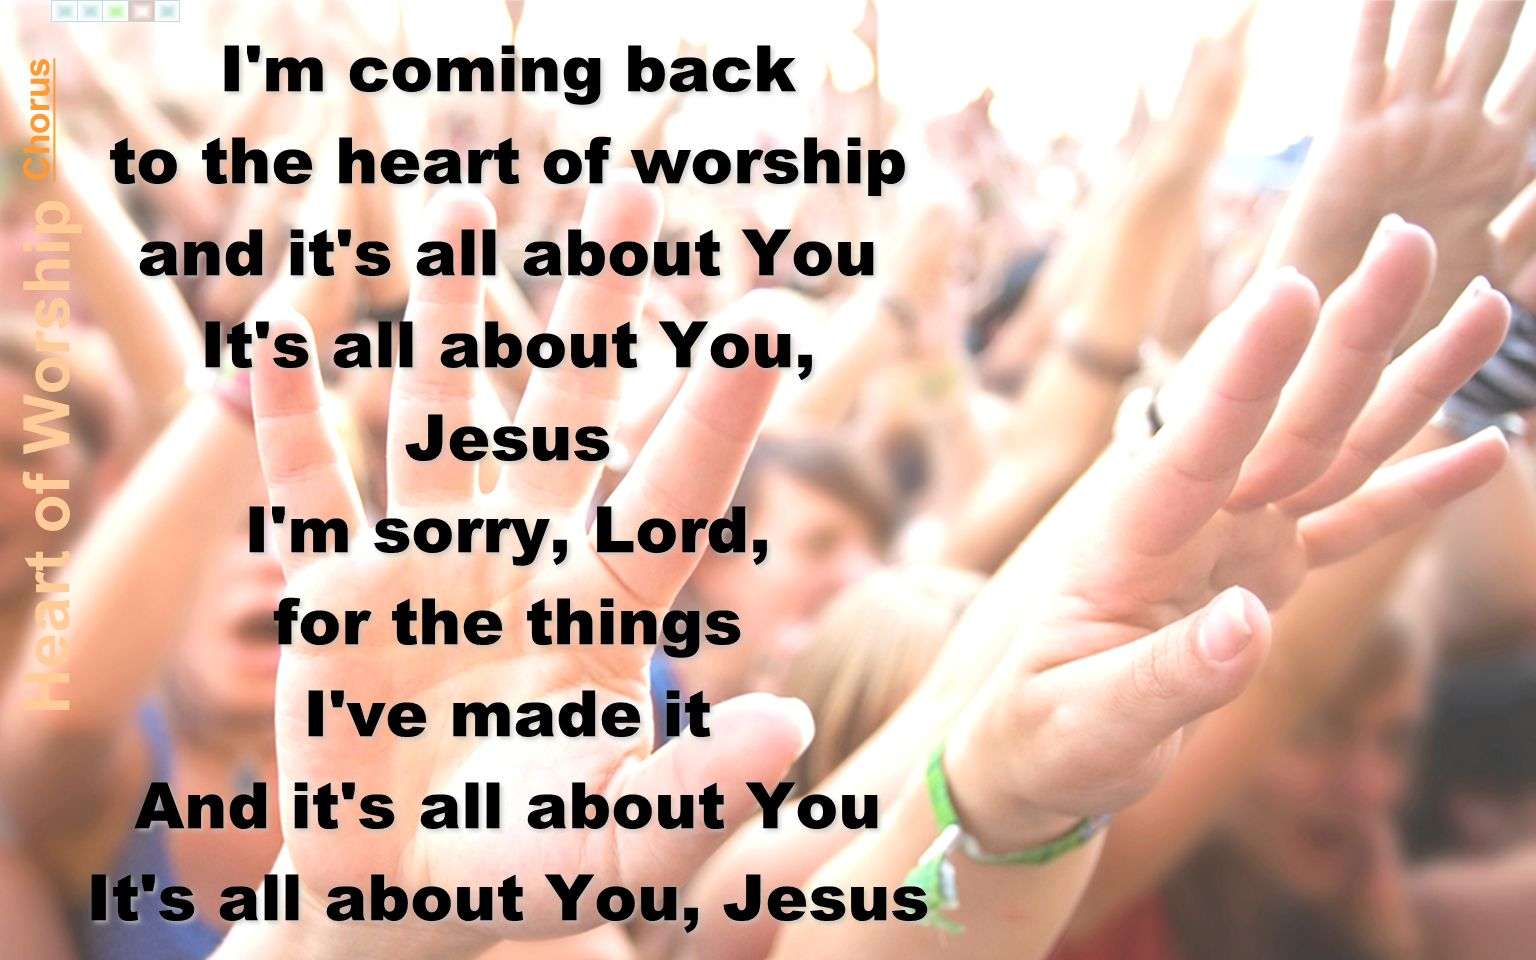 I m coming back to the heart of worship and it s all about You It s all about You, Jesus I m sorry, Lord, for the things I ve made it And it s all about You It s all about You, Jesus I m coming back to the heart of worship and it s all about You It s all about You, Jesus I m sorry, Lord, for the things I ve made it And it s all about You It s all about You, Jesus Chorus Heart of Worship